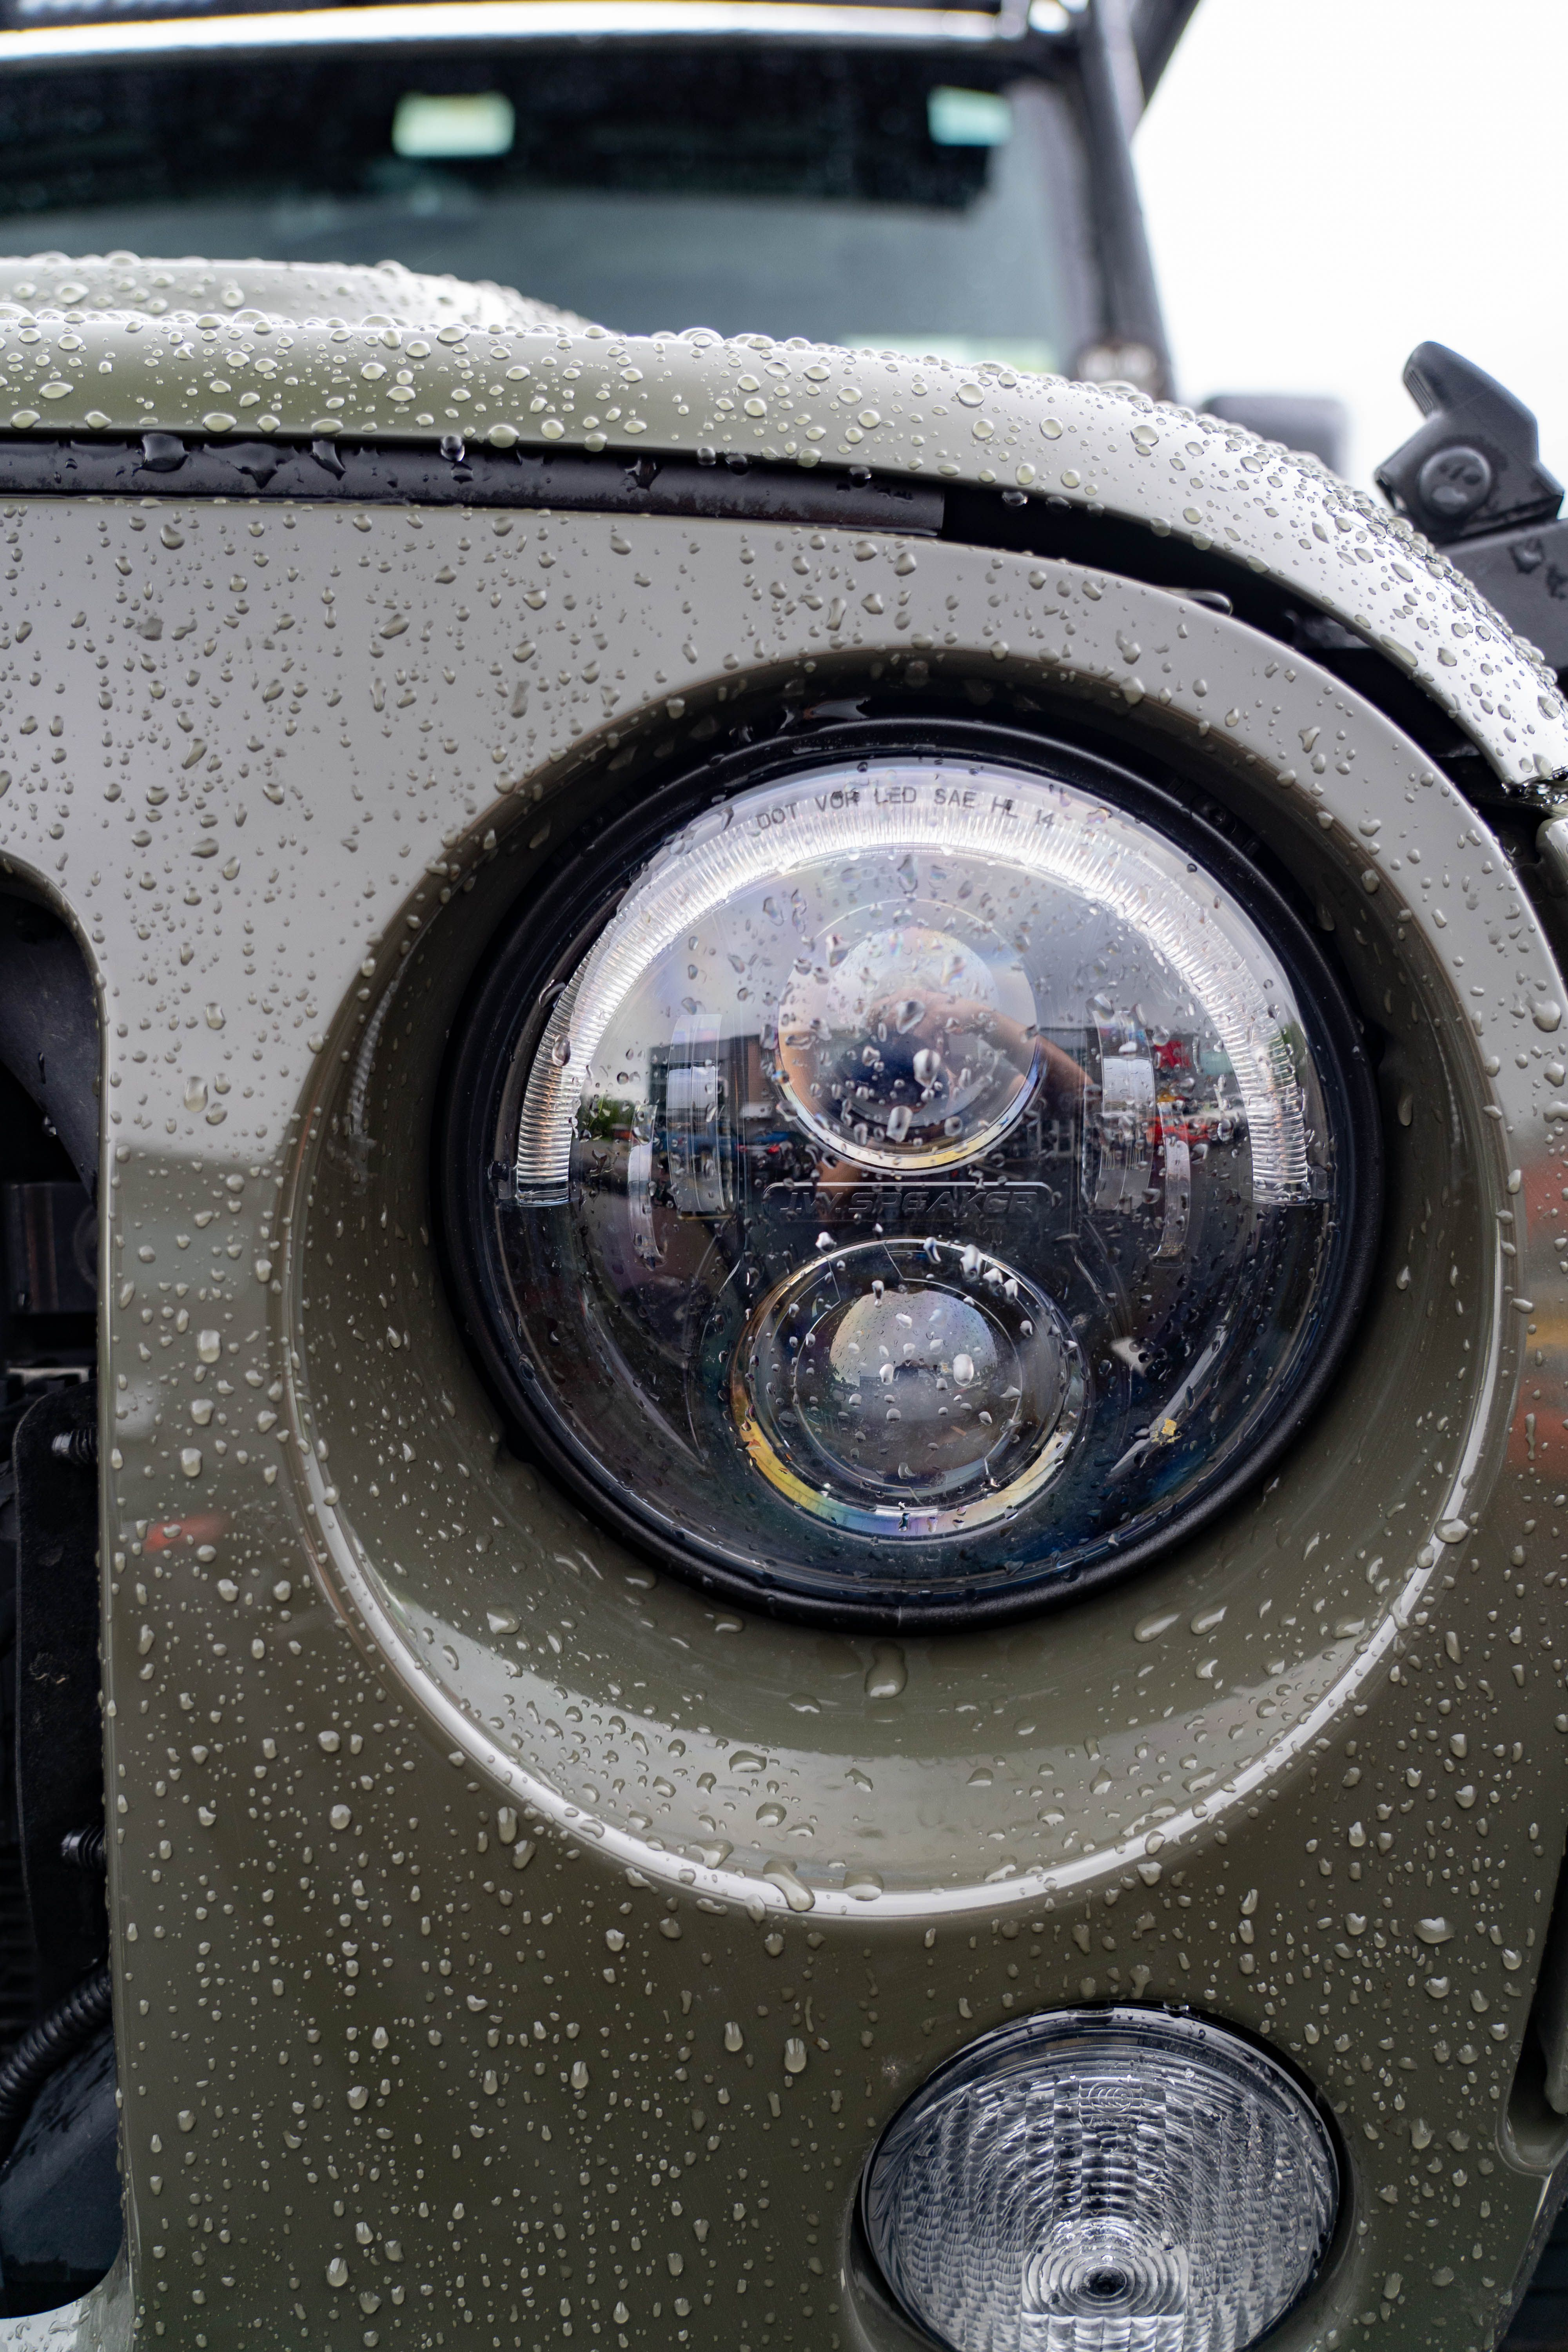 The 8700 Led Headlights Have Evolved Again Redesigned Specifically For The Jeep Wrangler The 8700 Evolution J Led Head Jeep Wrangler 2007 Jeep Wrangler Jeep